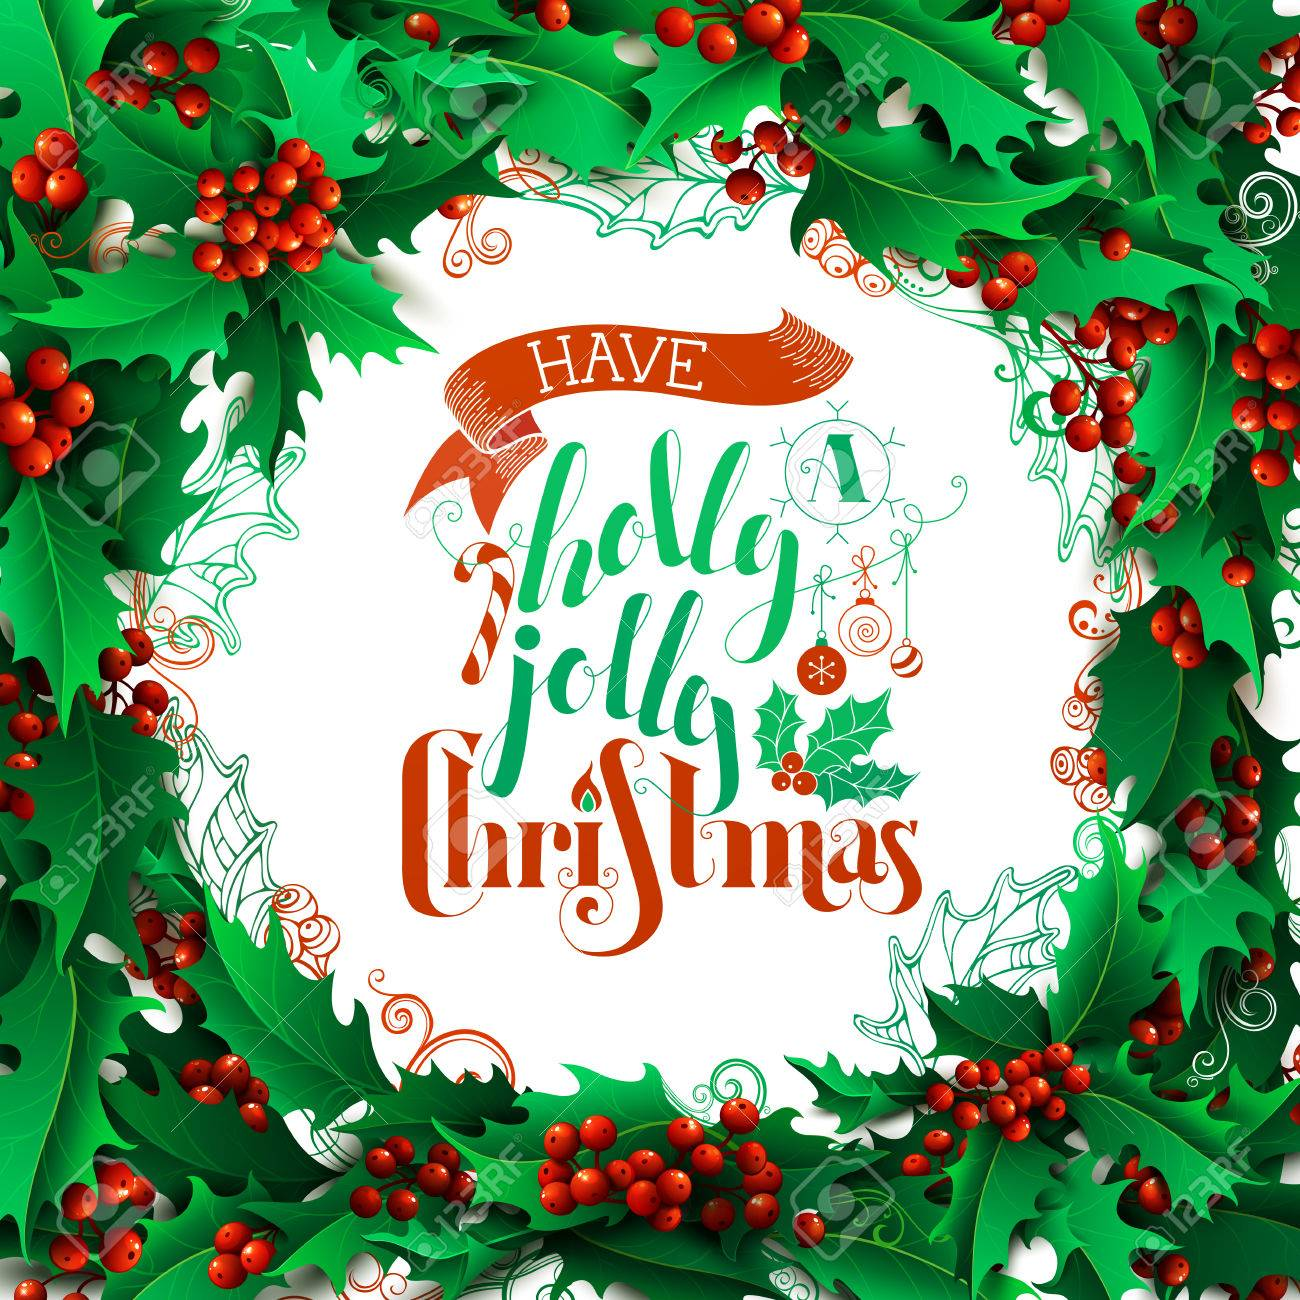 Holly Jolly Christmas.Have A Holly Jolly Christmas Merry Christmas Holly Berries Background